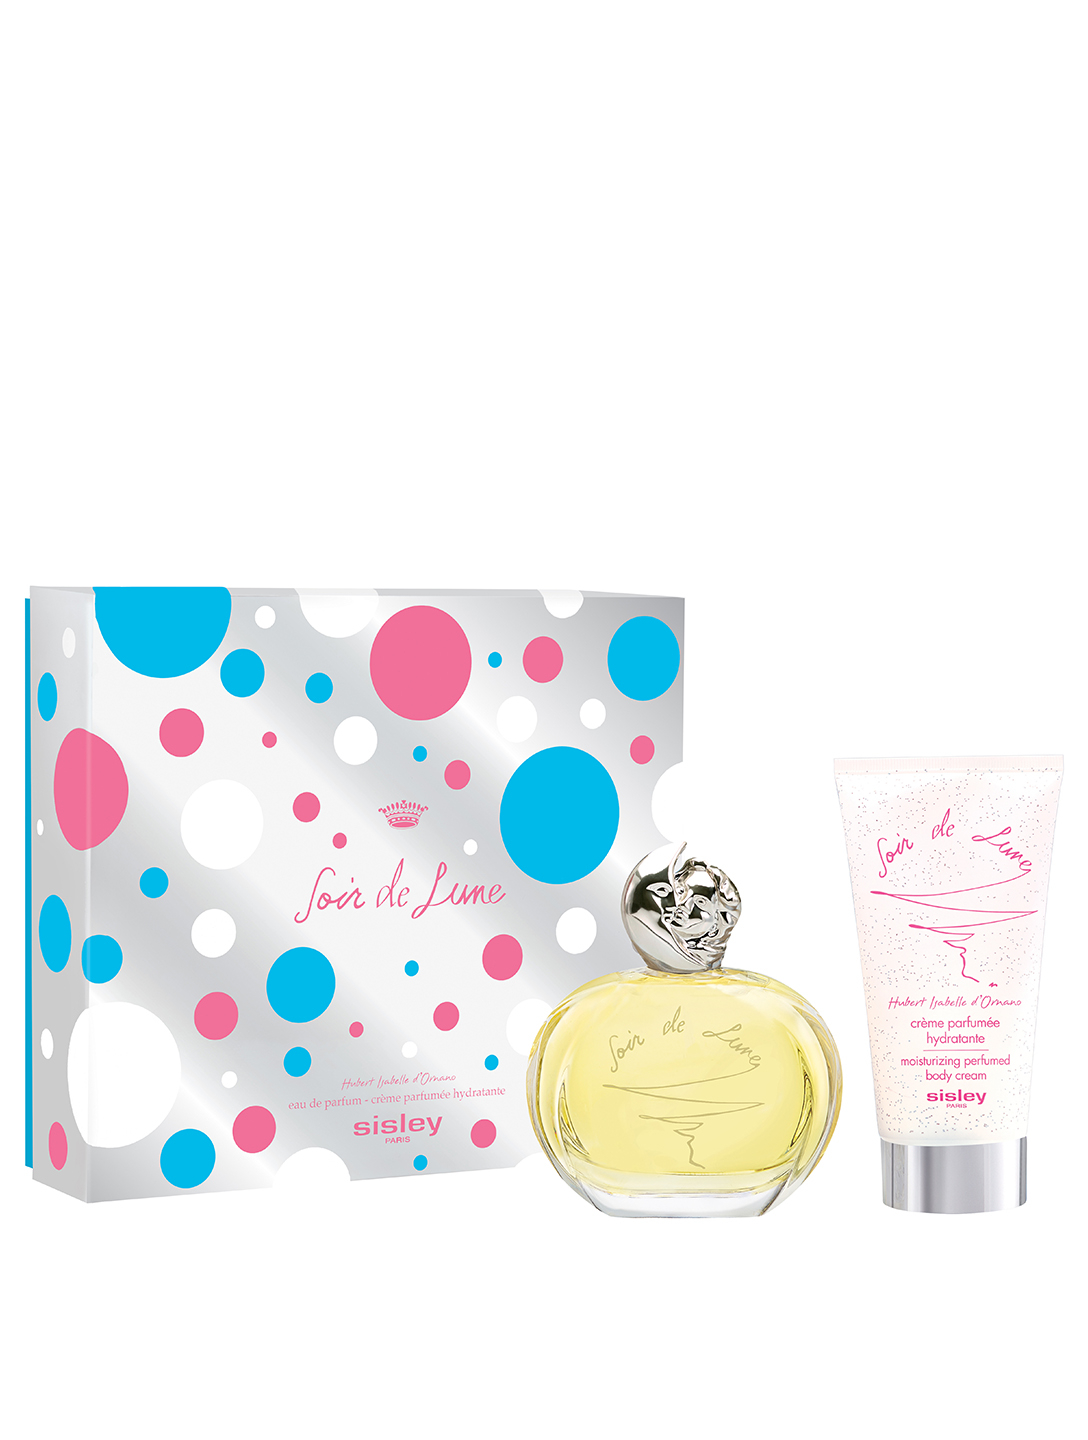 SISLEY-PARIS Soir de Lune Gift Set Beauty